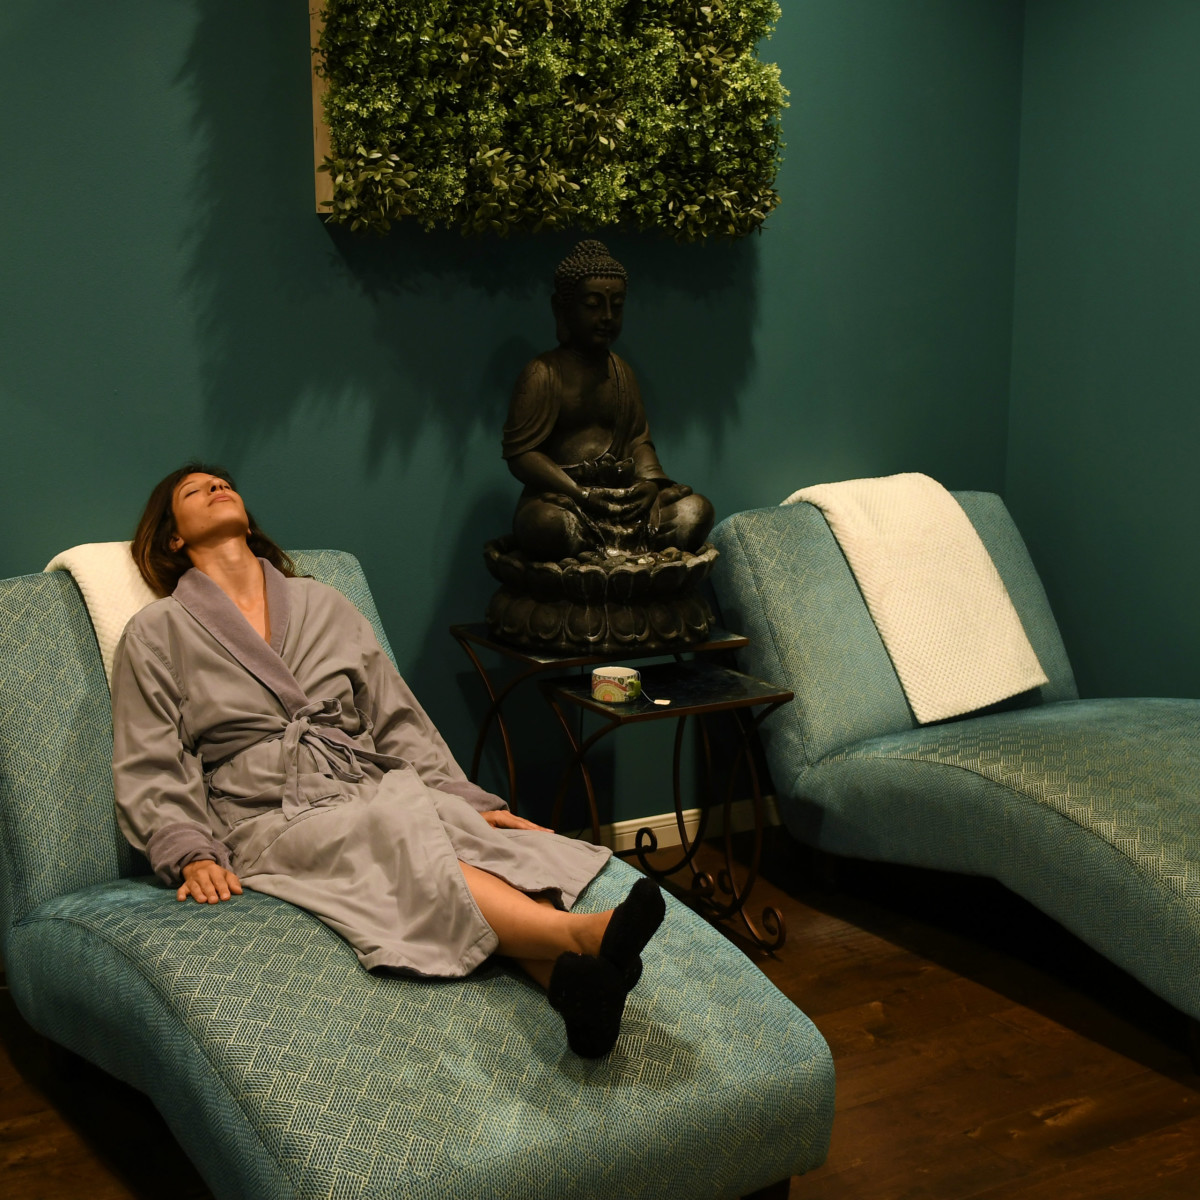 Sanctuary Spa relaxation room woman